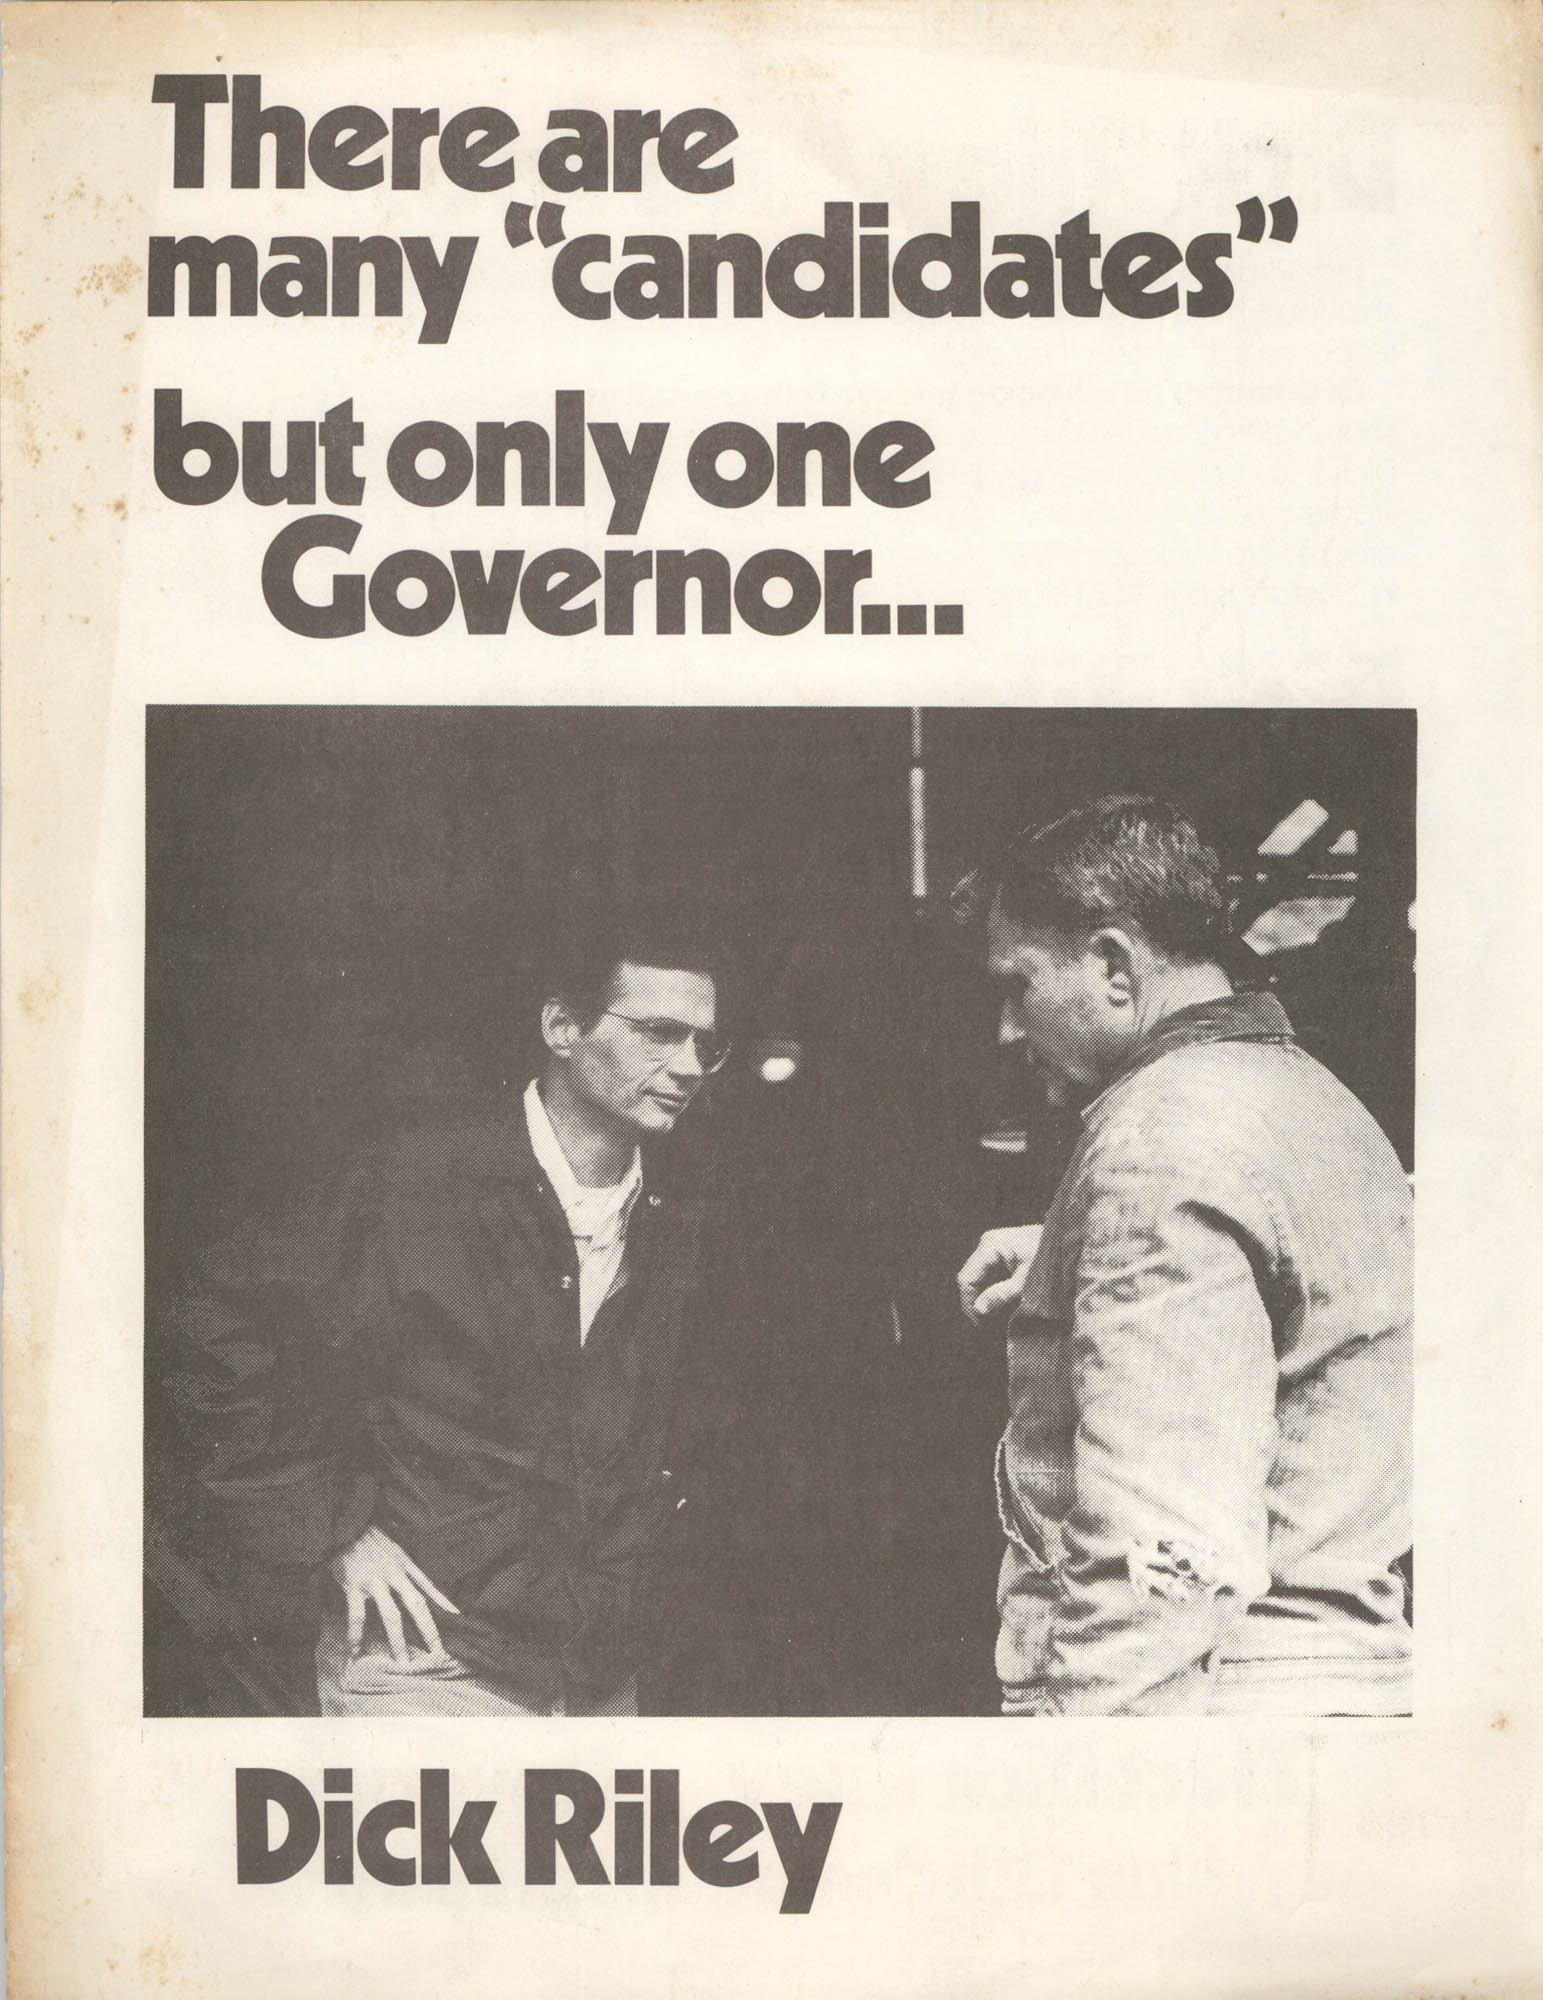 Dick Riley, Campaign Materials